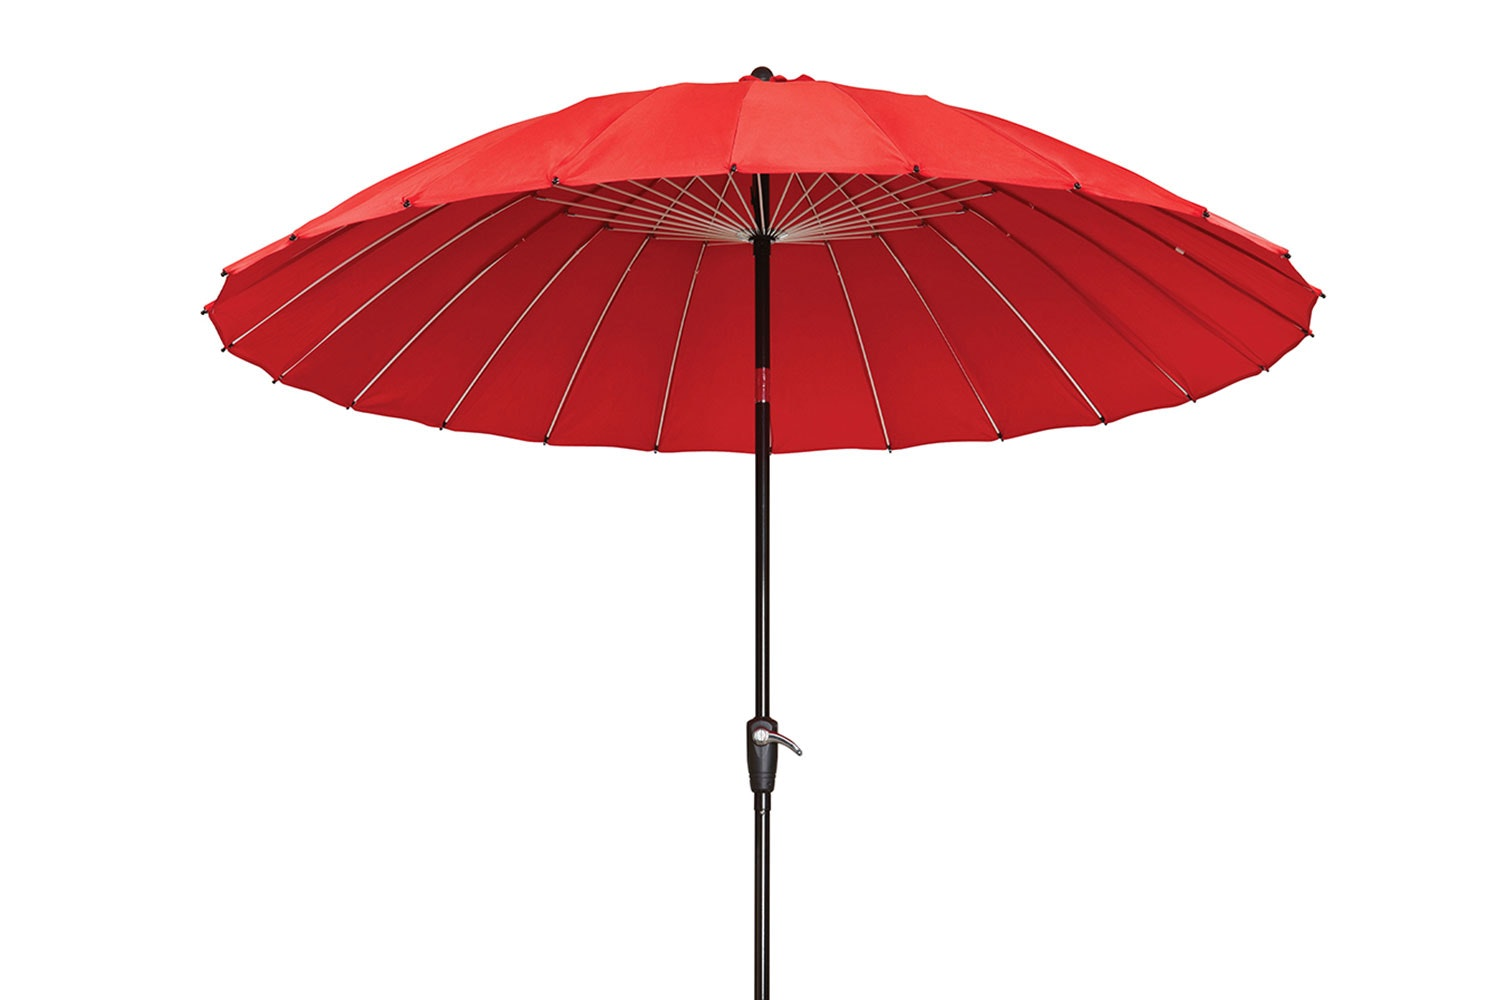 Oriental 2.7m Outdoor Umbrella  - Red - Peros